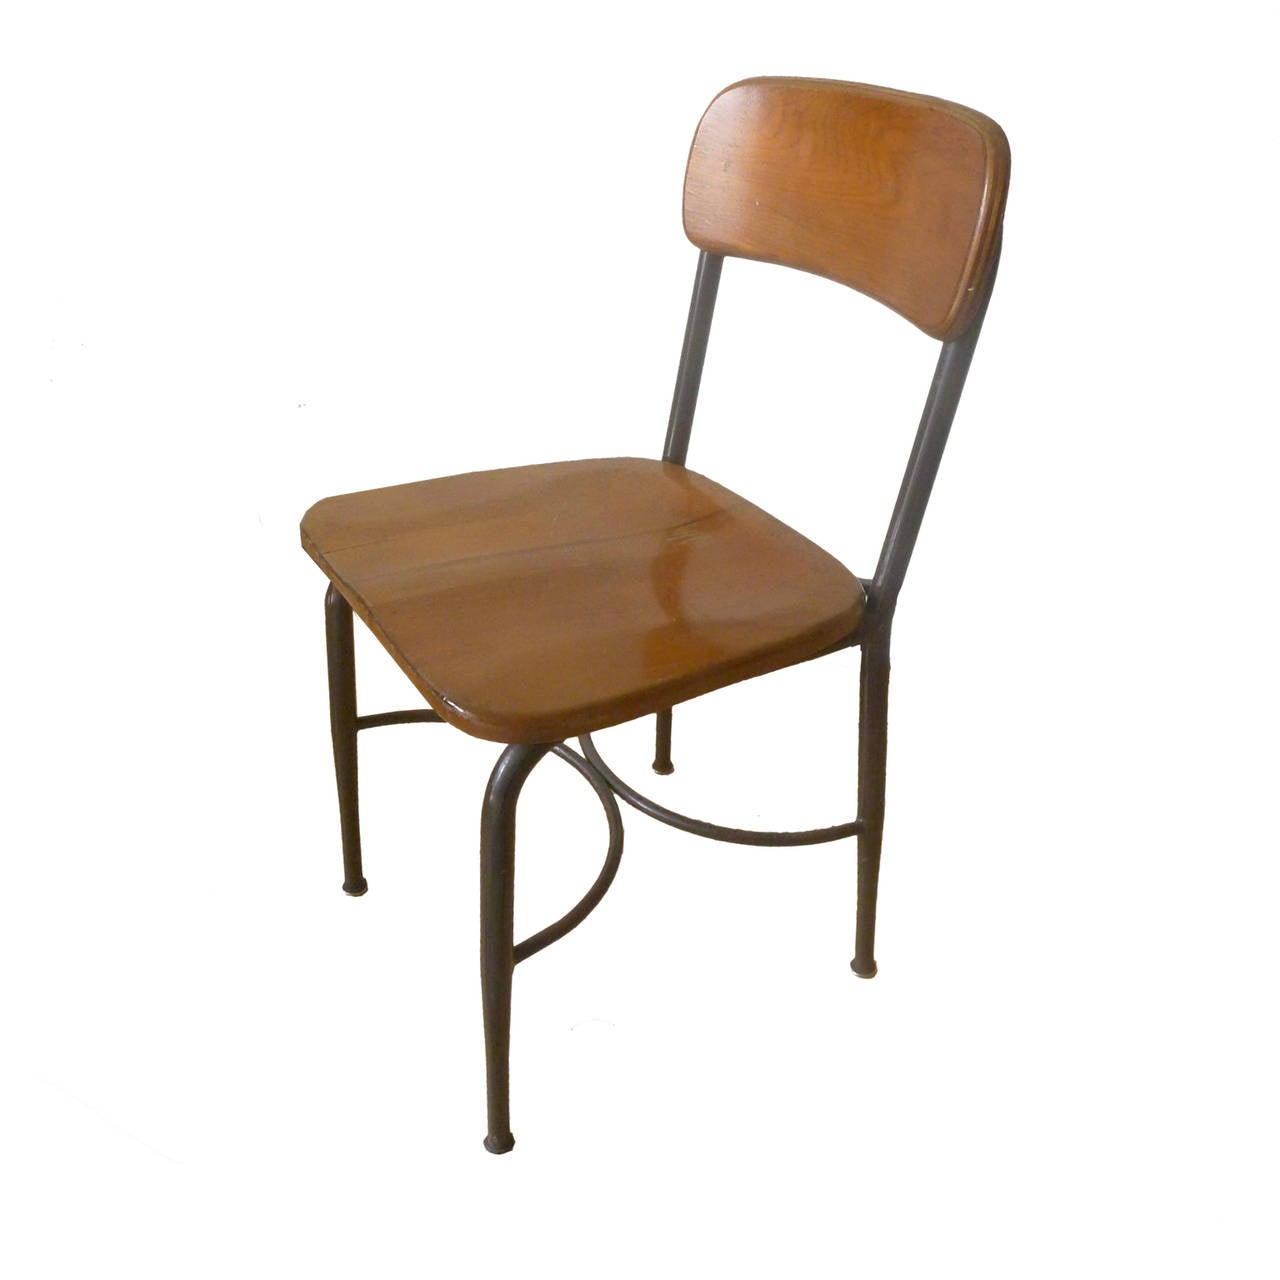 heywood wakefield dogbone chairs office chair assembly 8 adult sized vintage metal and maple